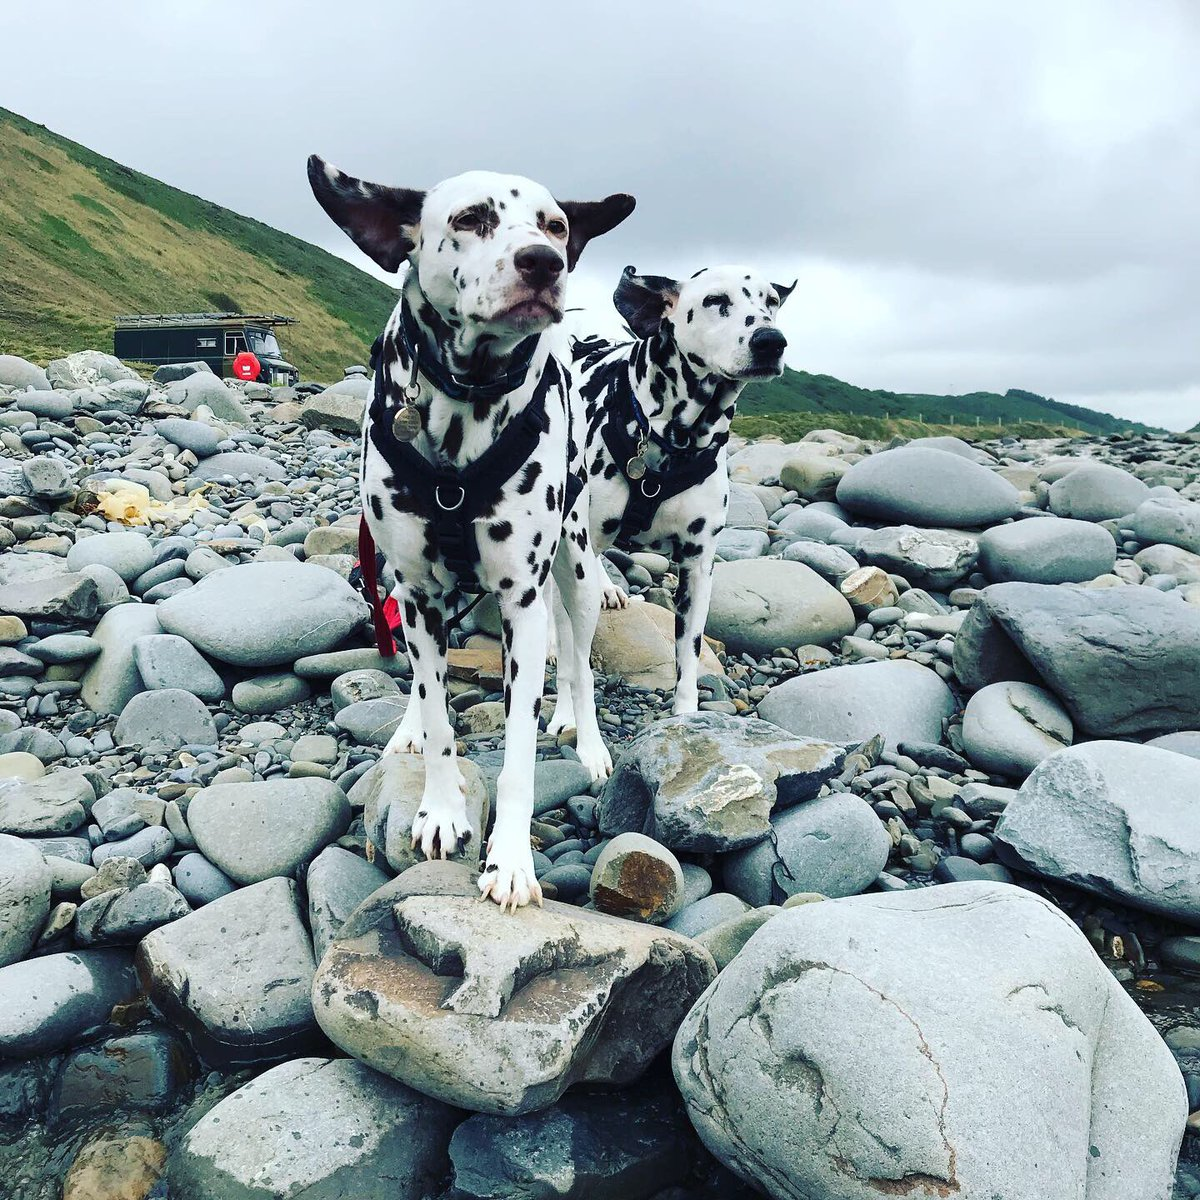 Holidays are not good for painting!!! We're back now and ready to paint!!! #cornwall #cornwallcoast #dalmatian #camping #beach #seaside #dog https://t.co/cQRPOGk9CZ